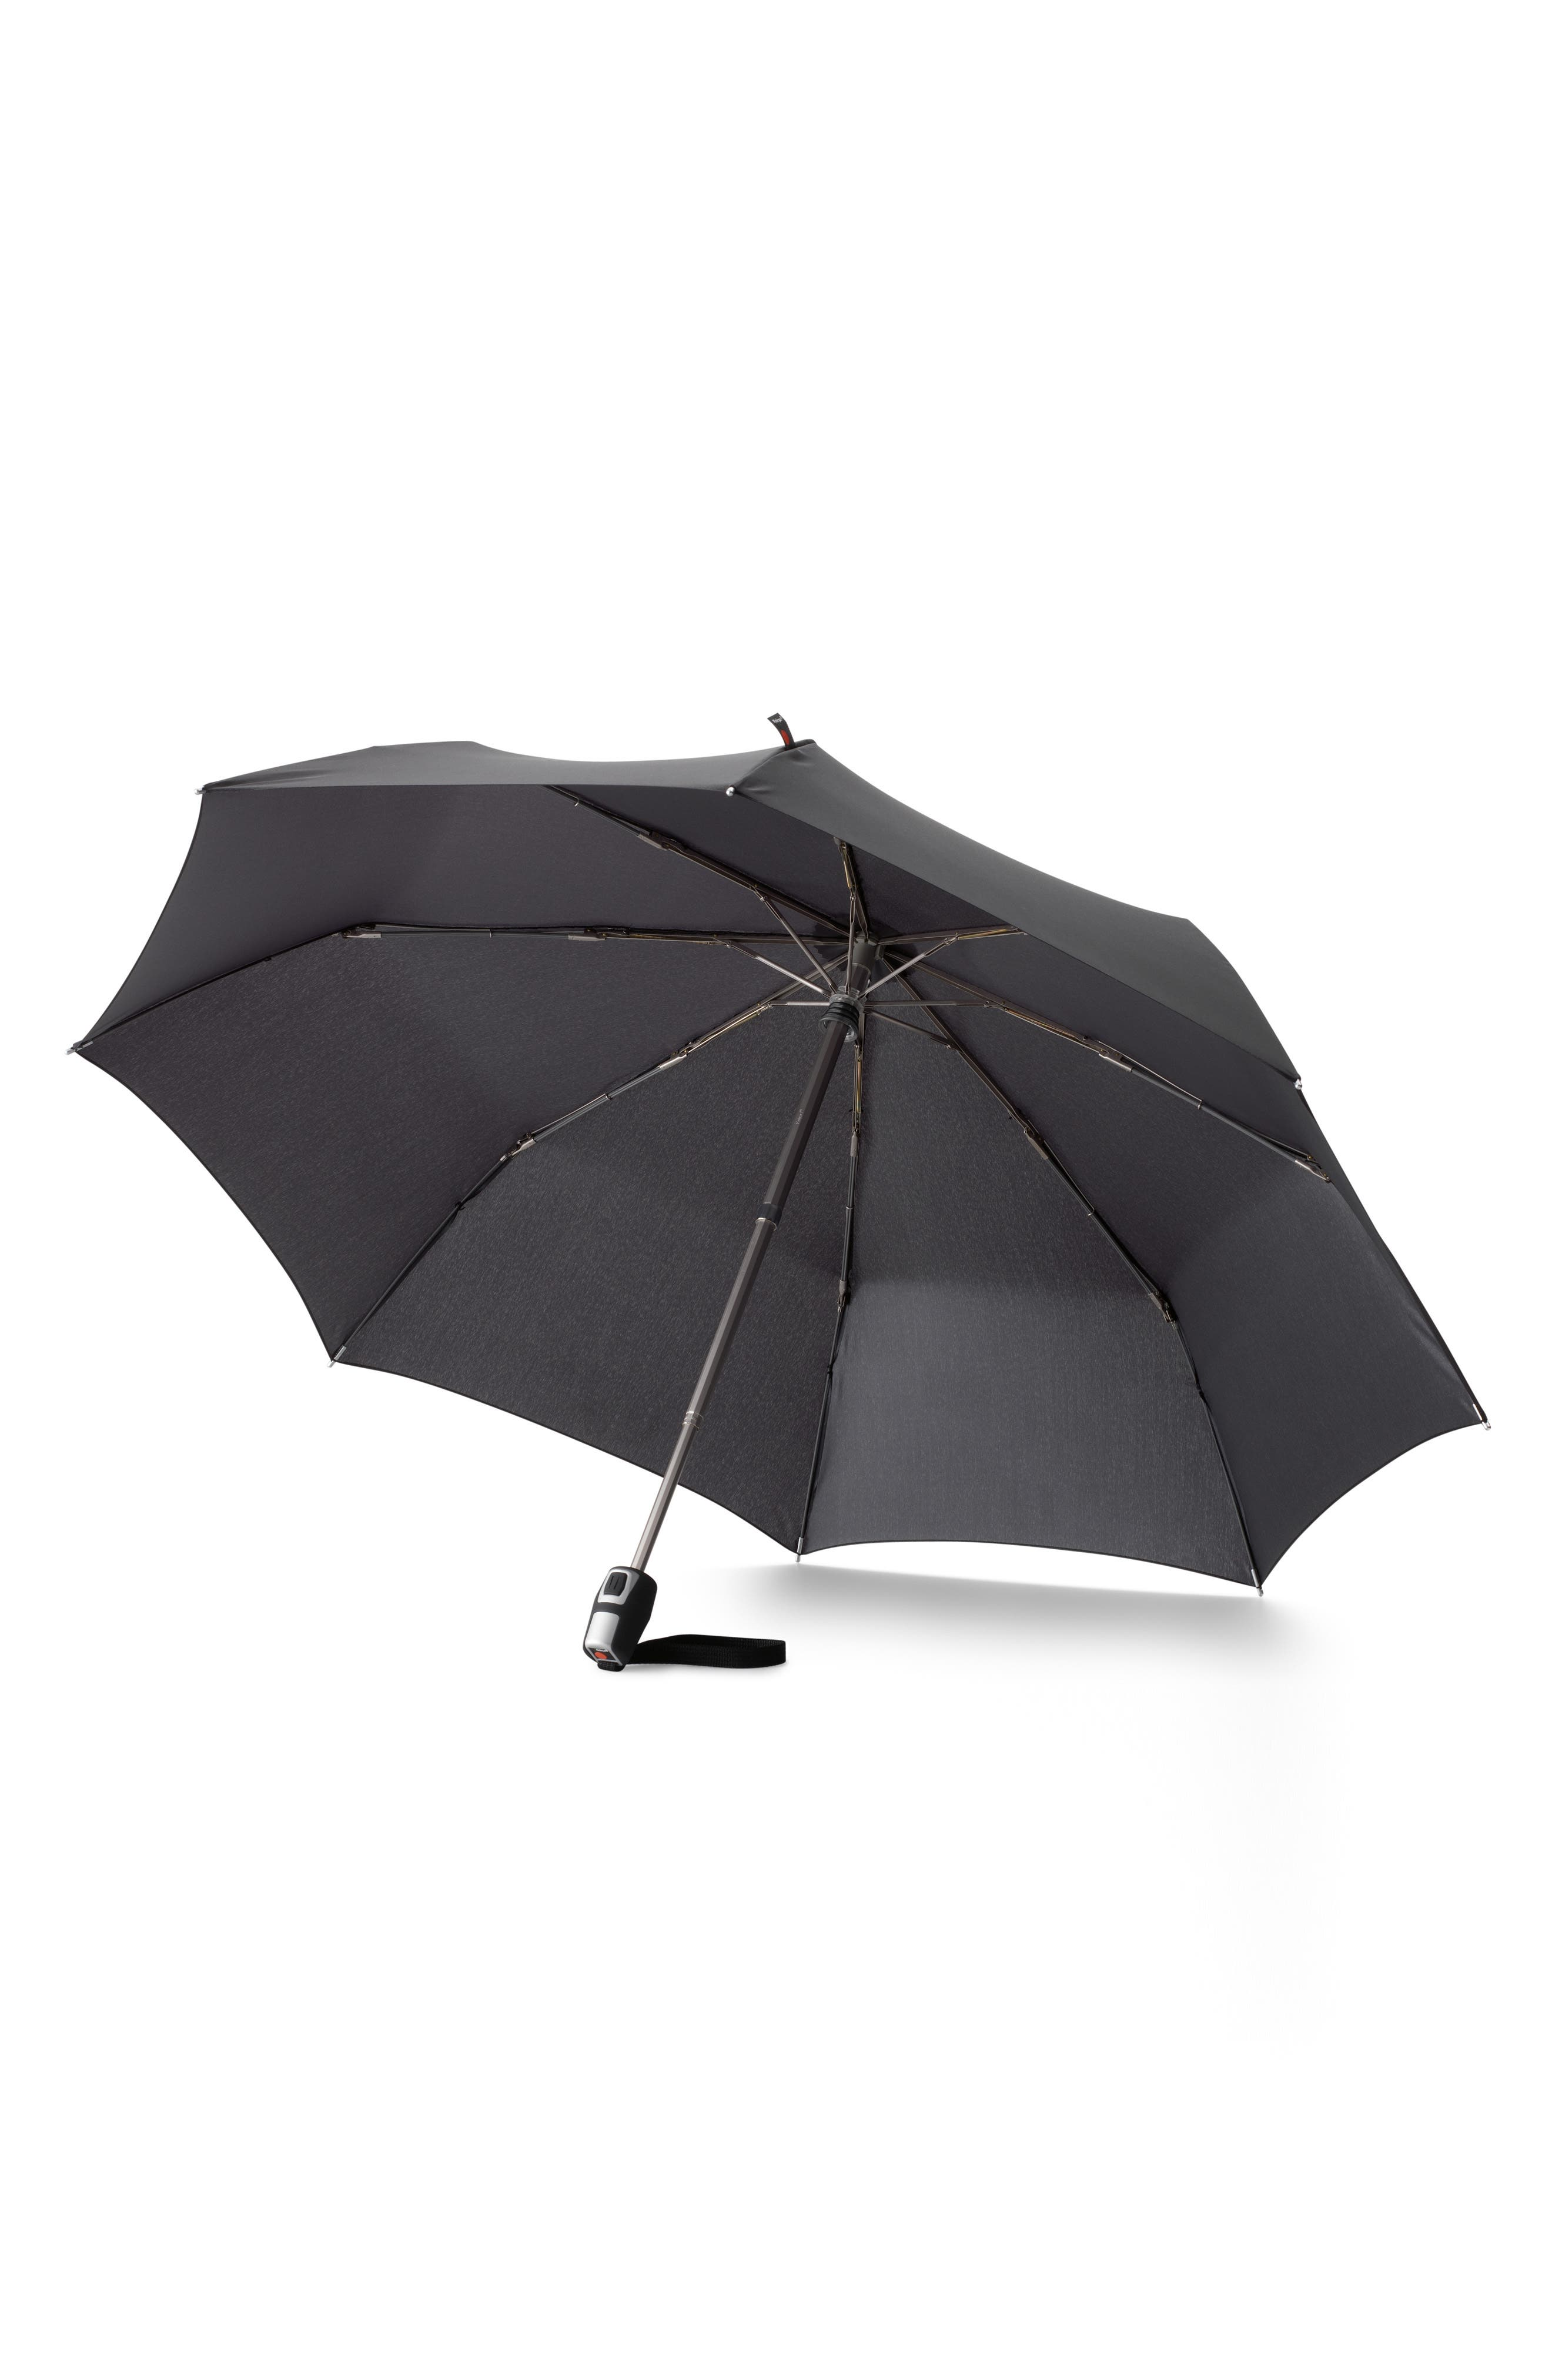 T200 Auto Open/Close Umbrella,                             Alternate thumbnail 3, color,                             BLACK